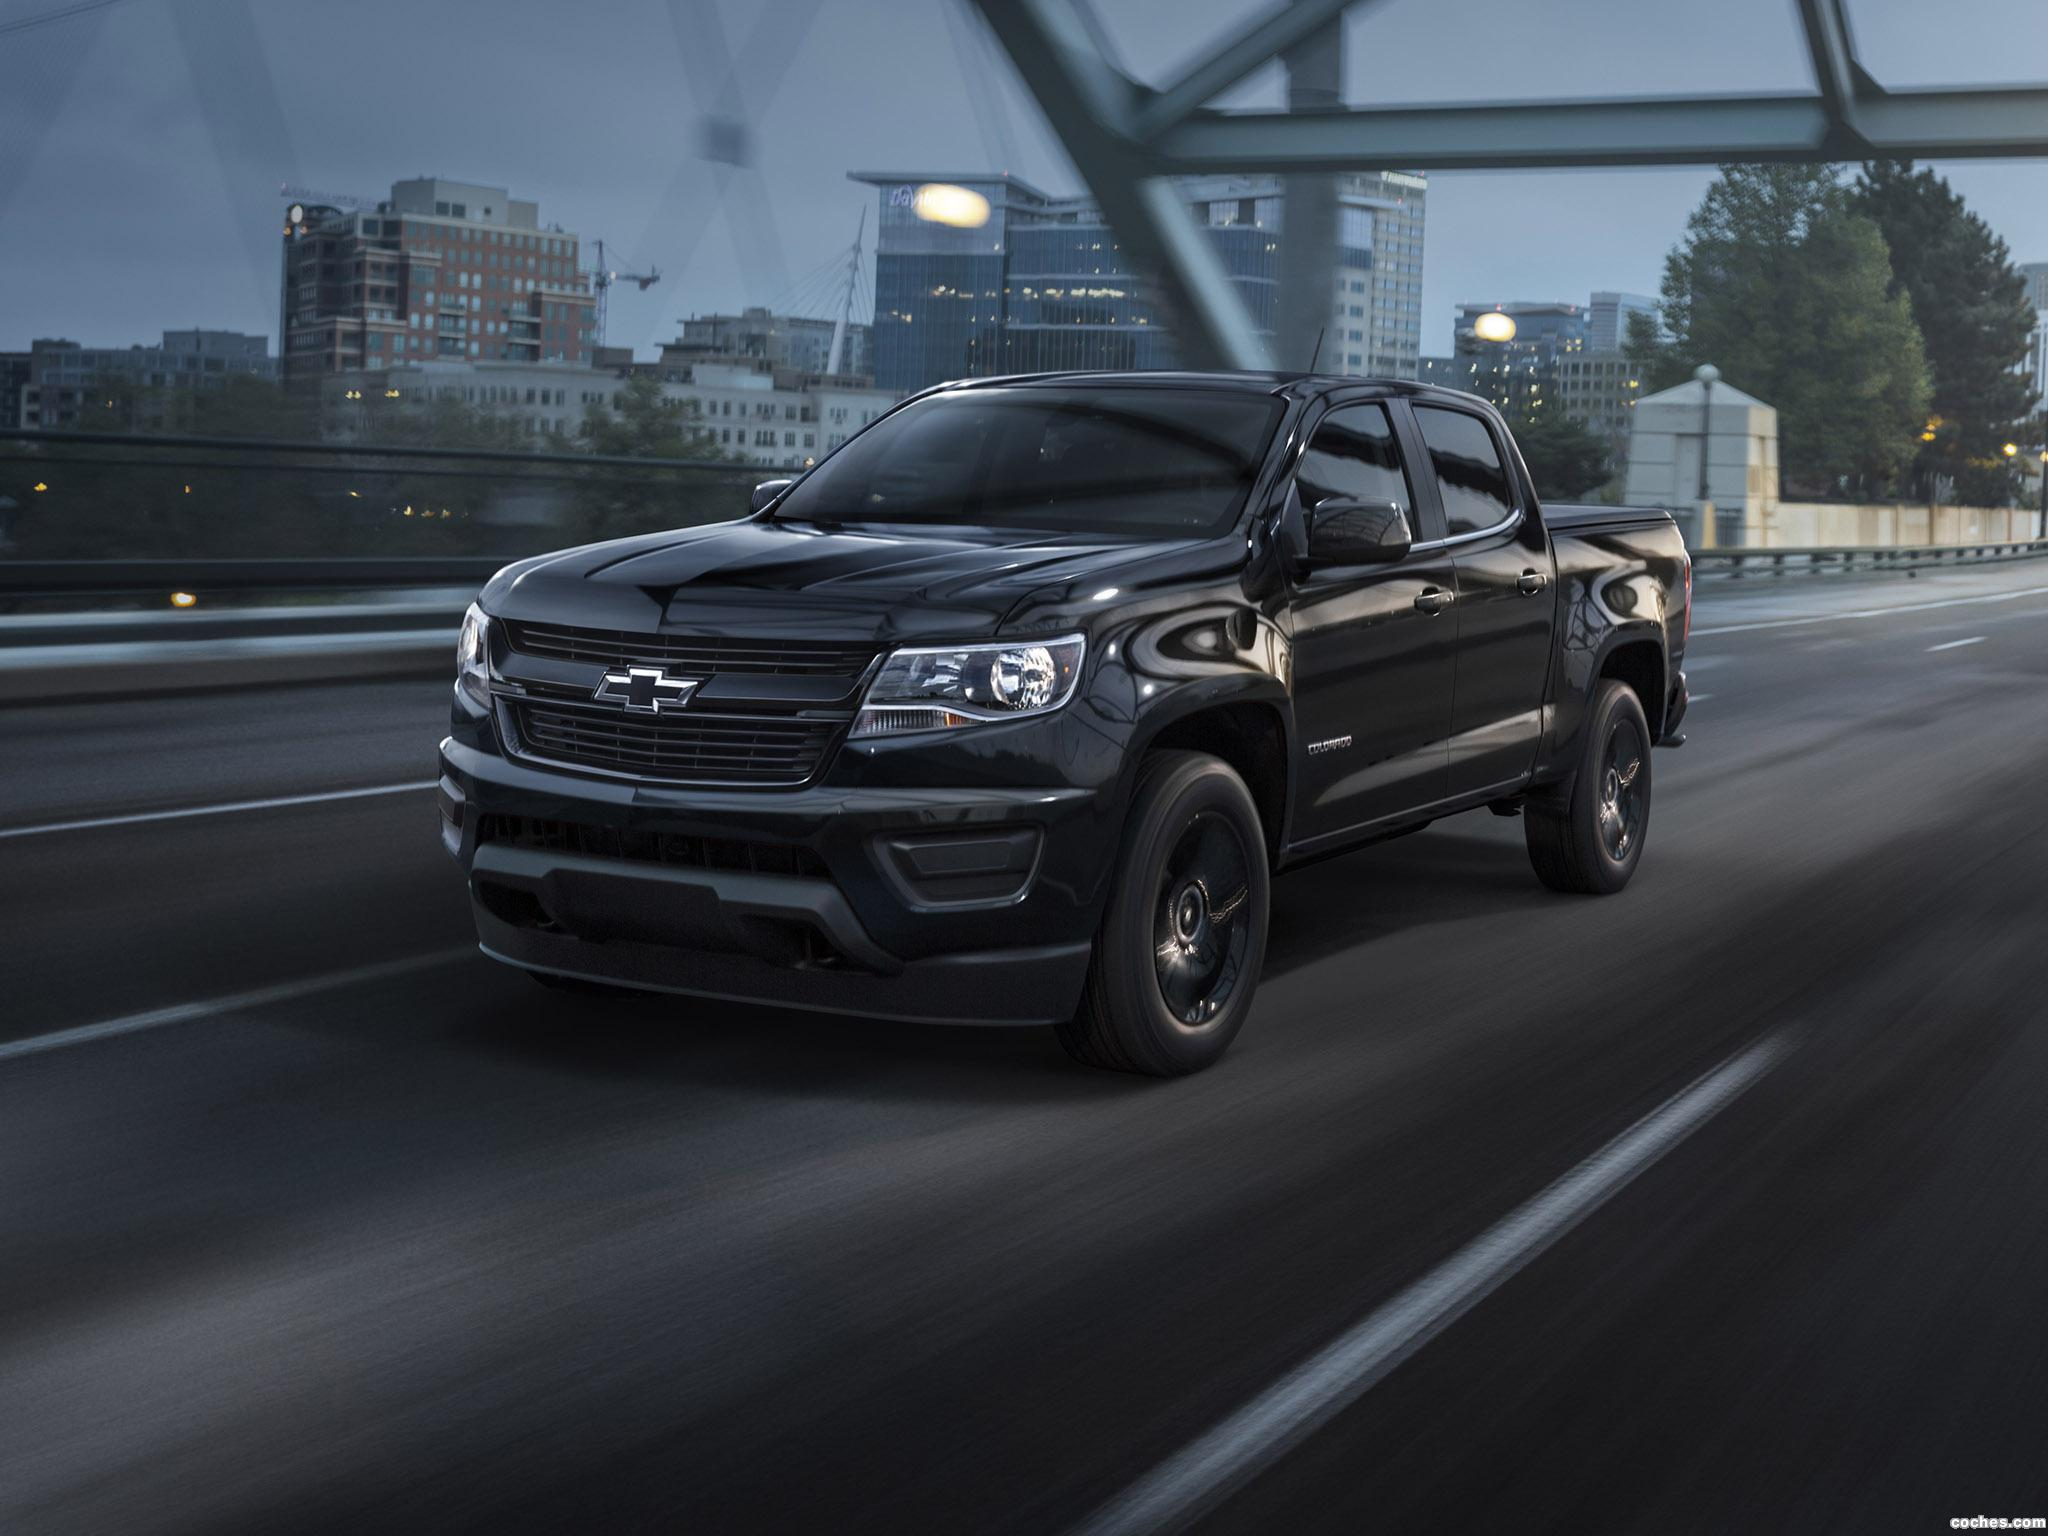 Foto 2 de Chevrolet Colorado LT Midnight Crew Cab 2015